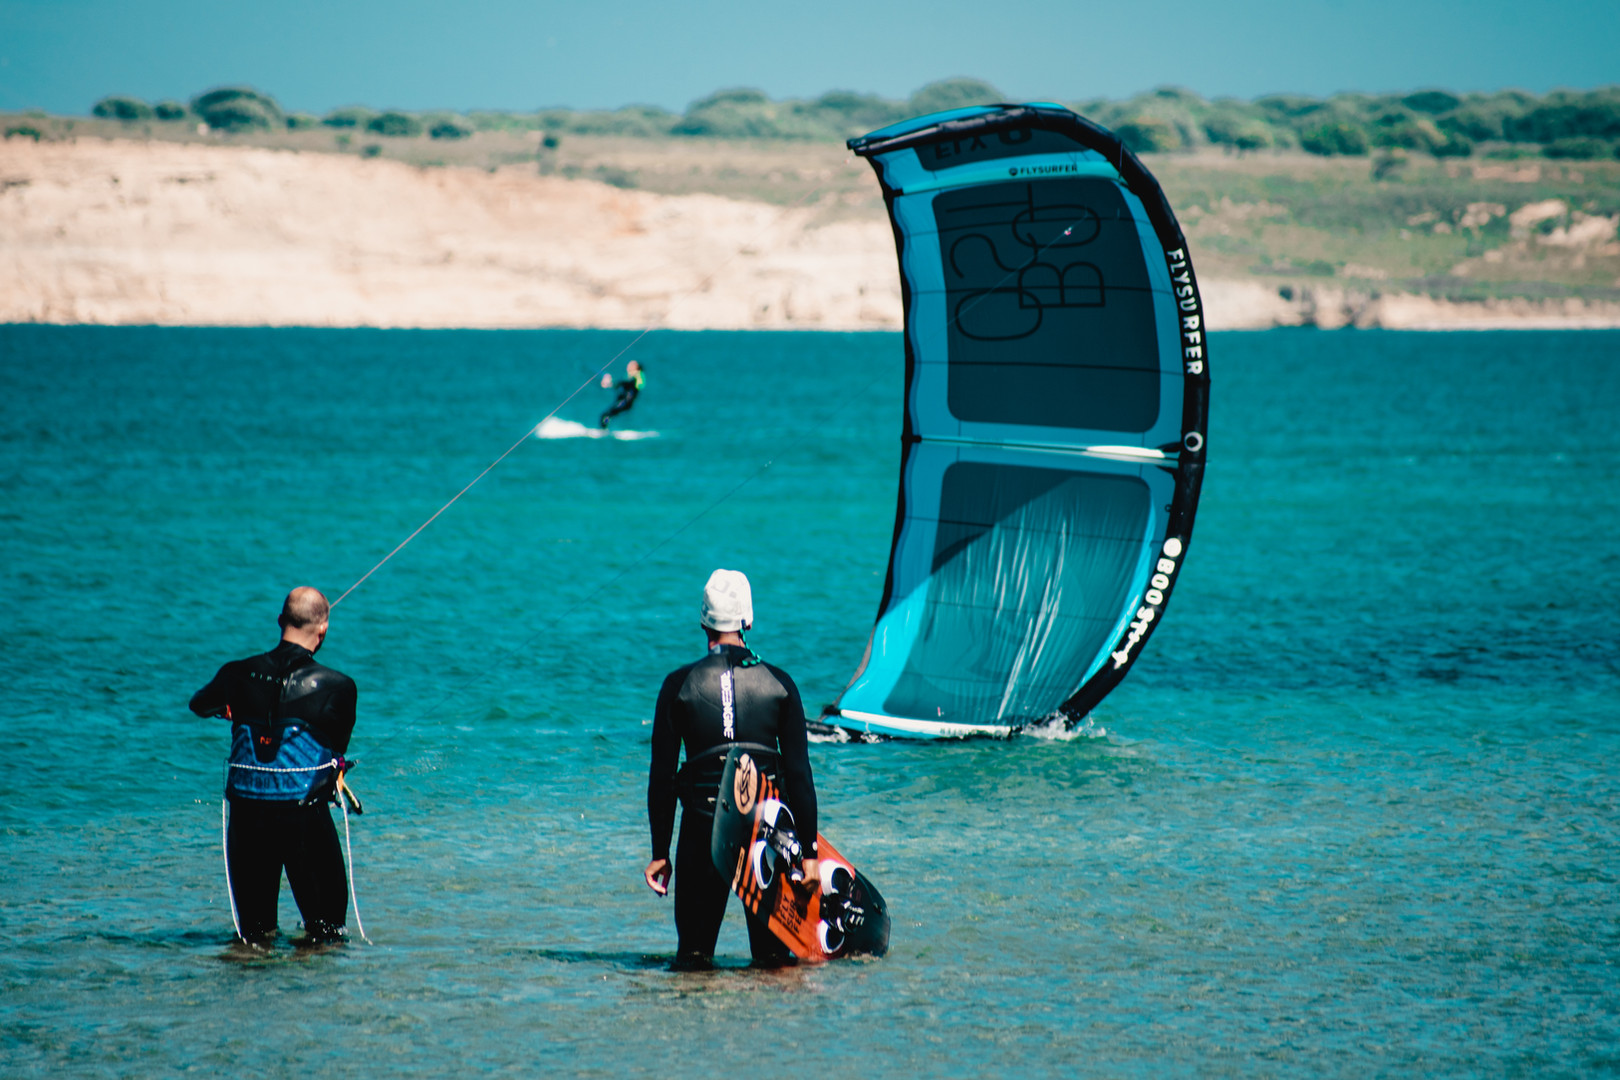 Gokceada Kitesurf Lessons and courses